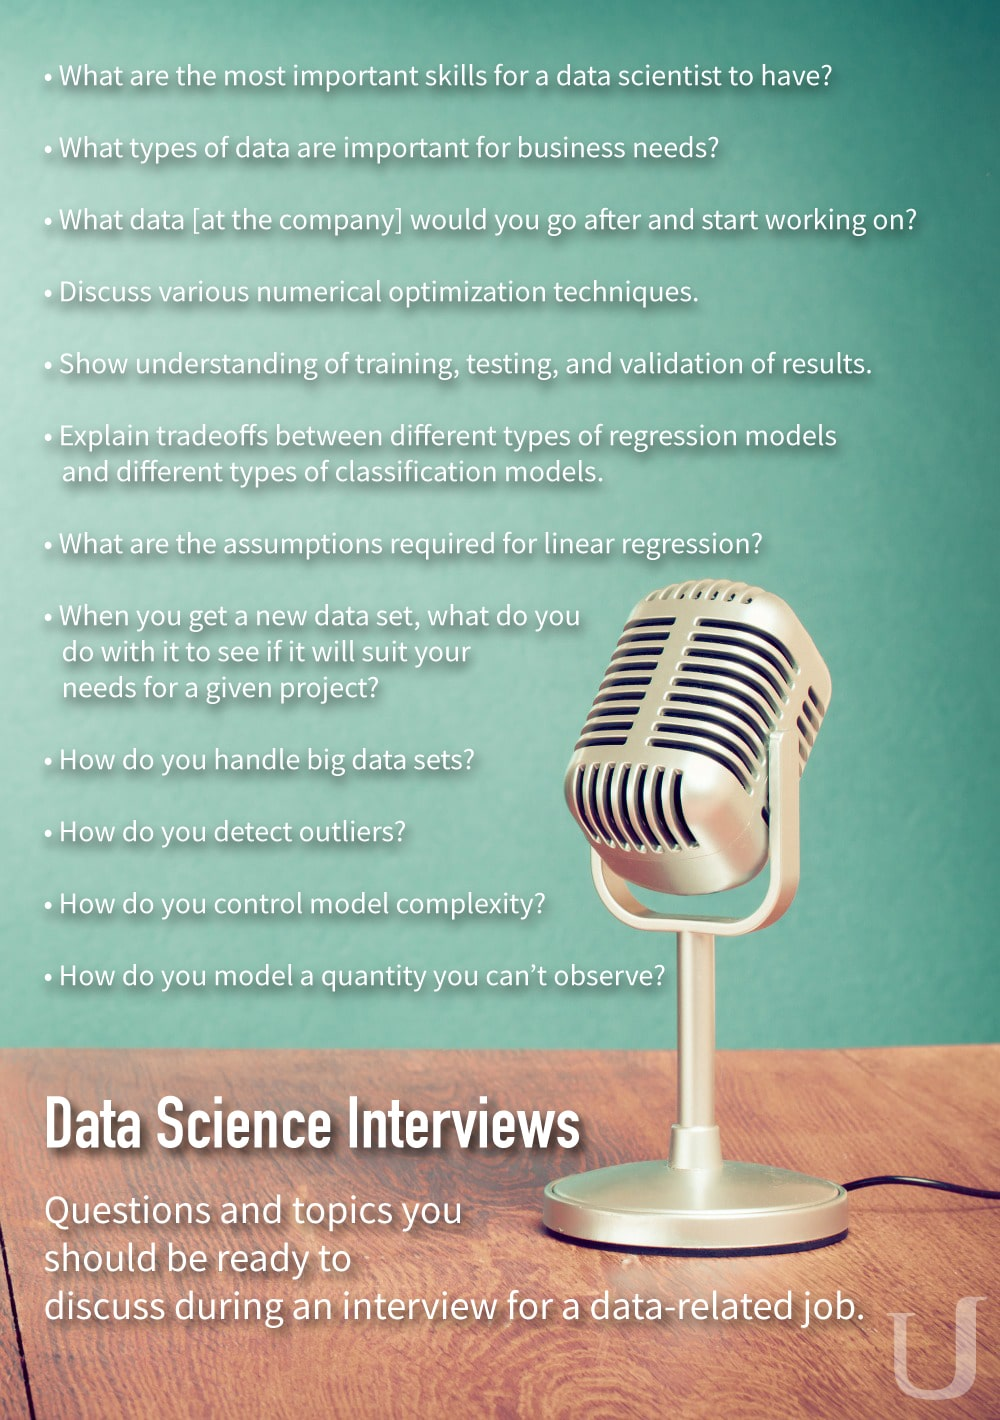 Questions From Data Science Interviews | Udacity